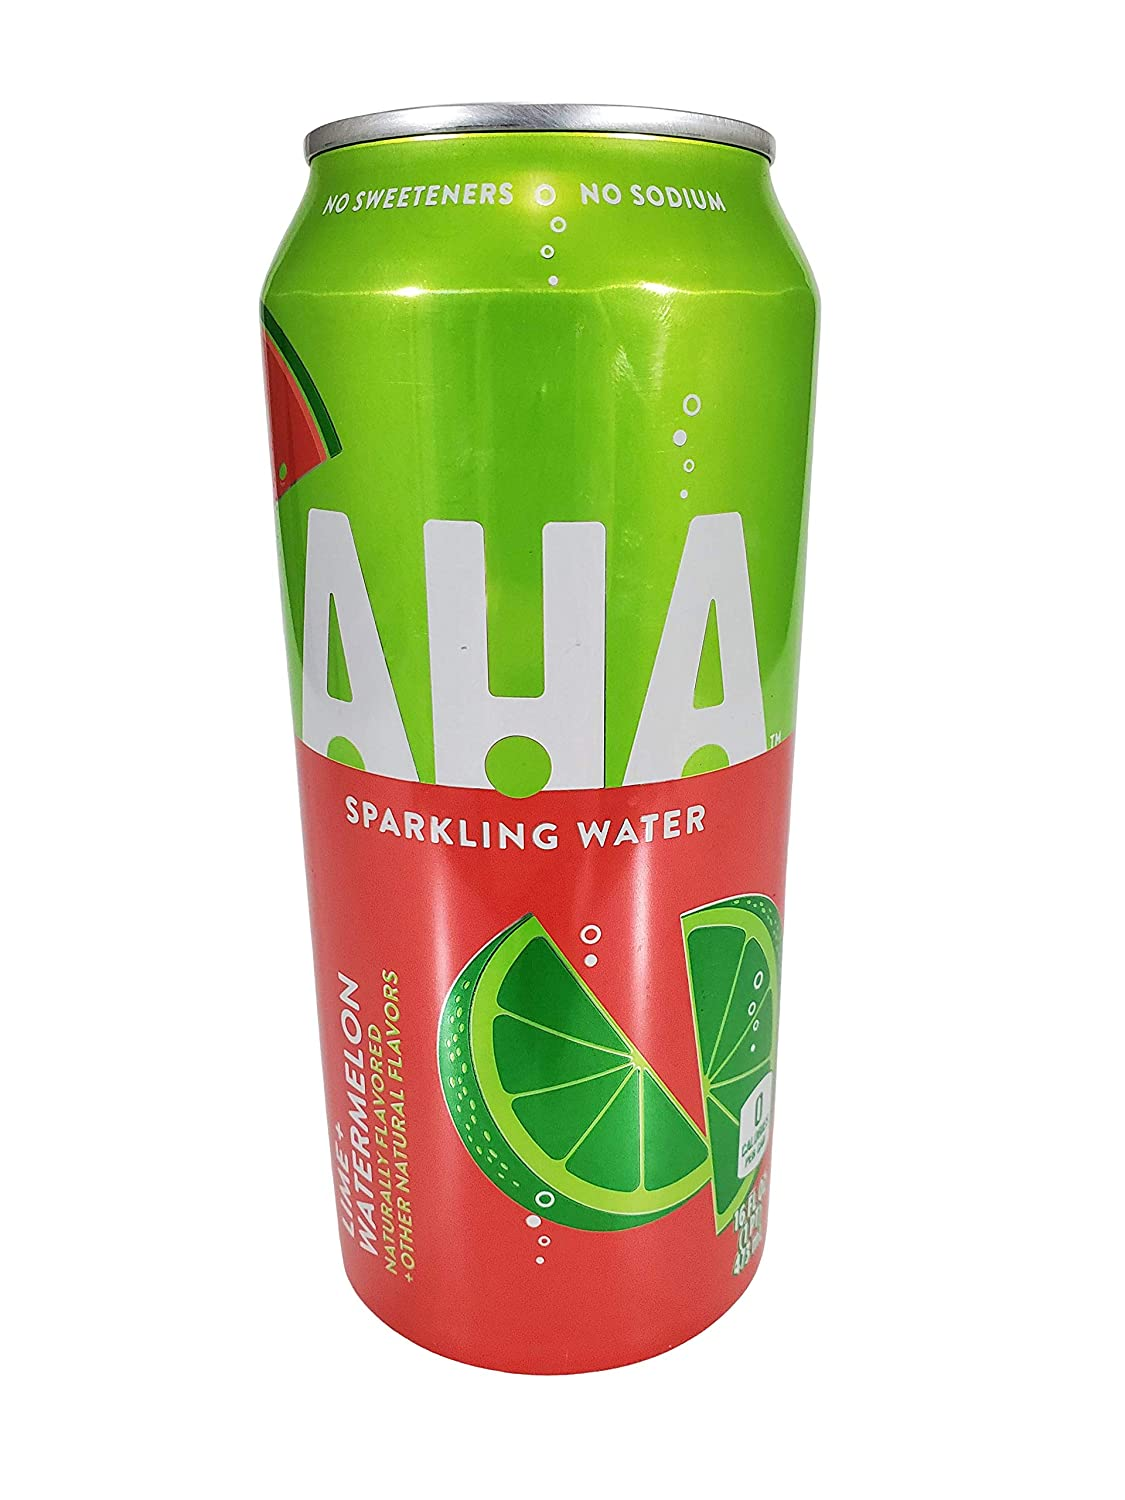 AHA Sparkling Water 16 ounce cans Naturally Flavored 0 Calories (Lime + Watermelon, 8 Cans)